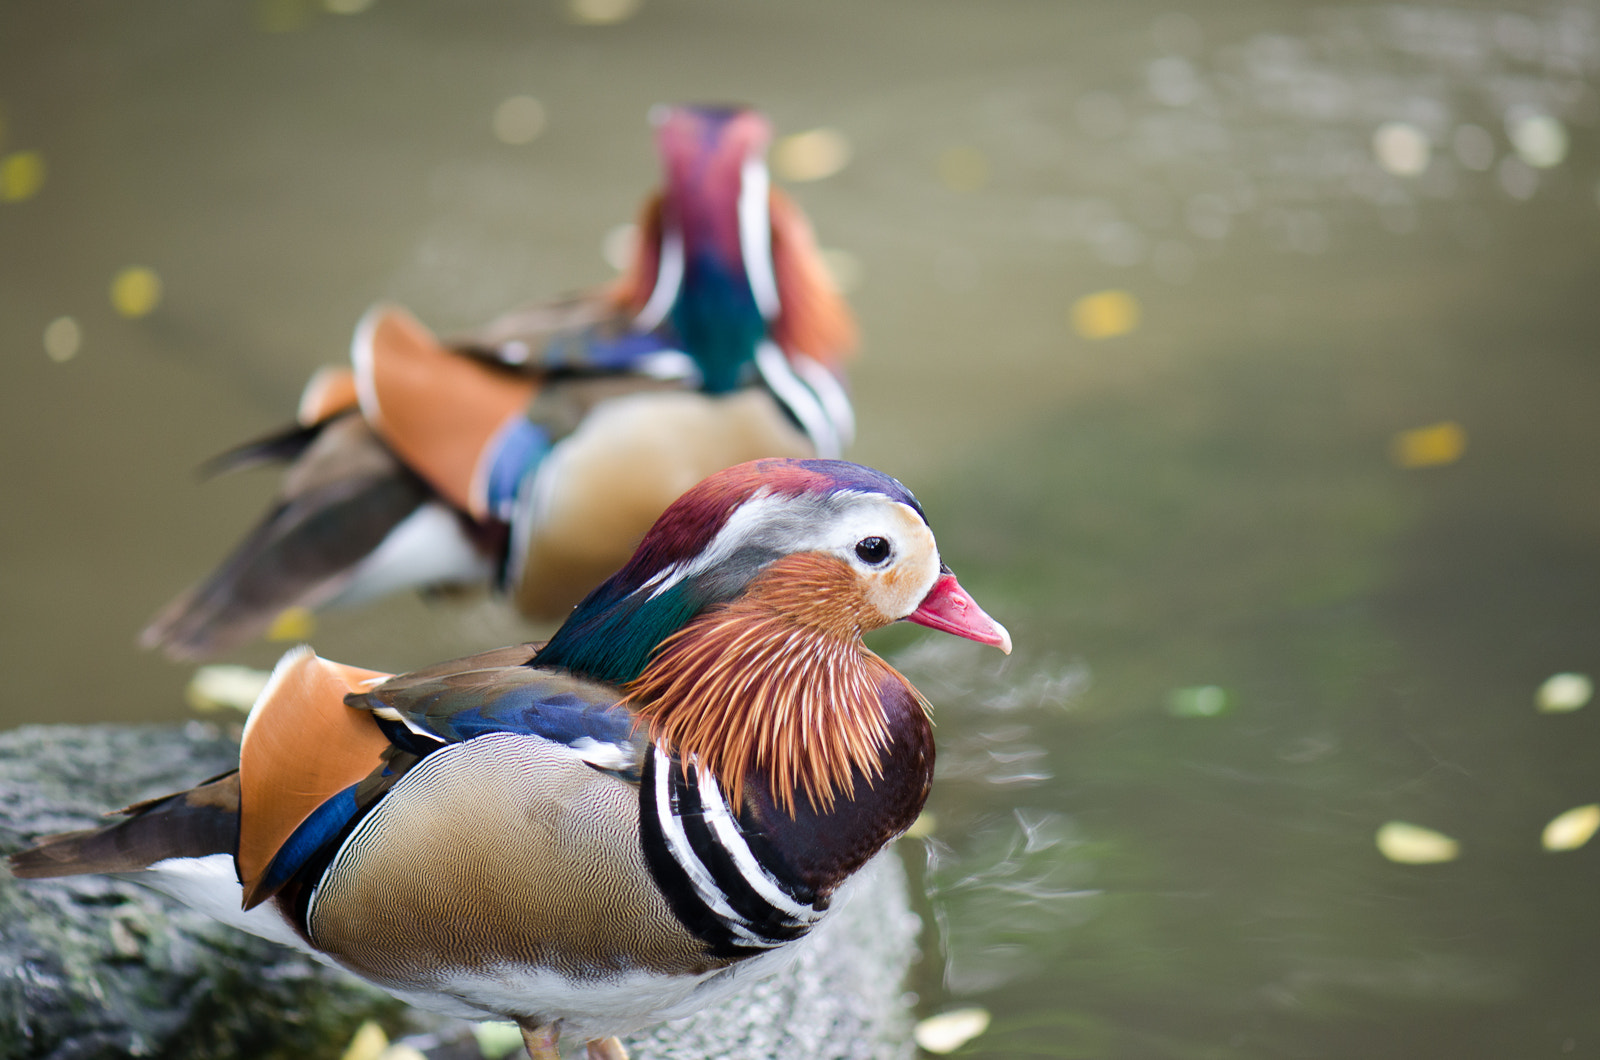 Photograph mandarin duck by Kok Leong Lee on 500px